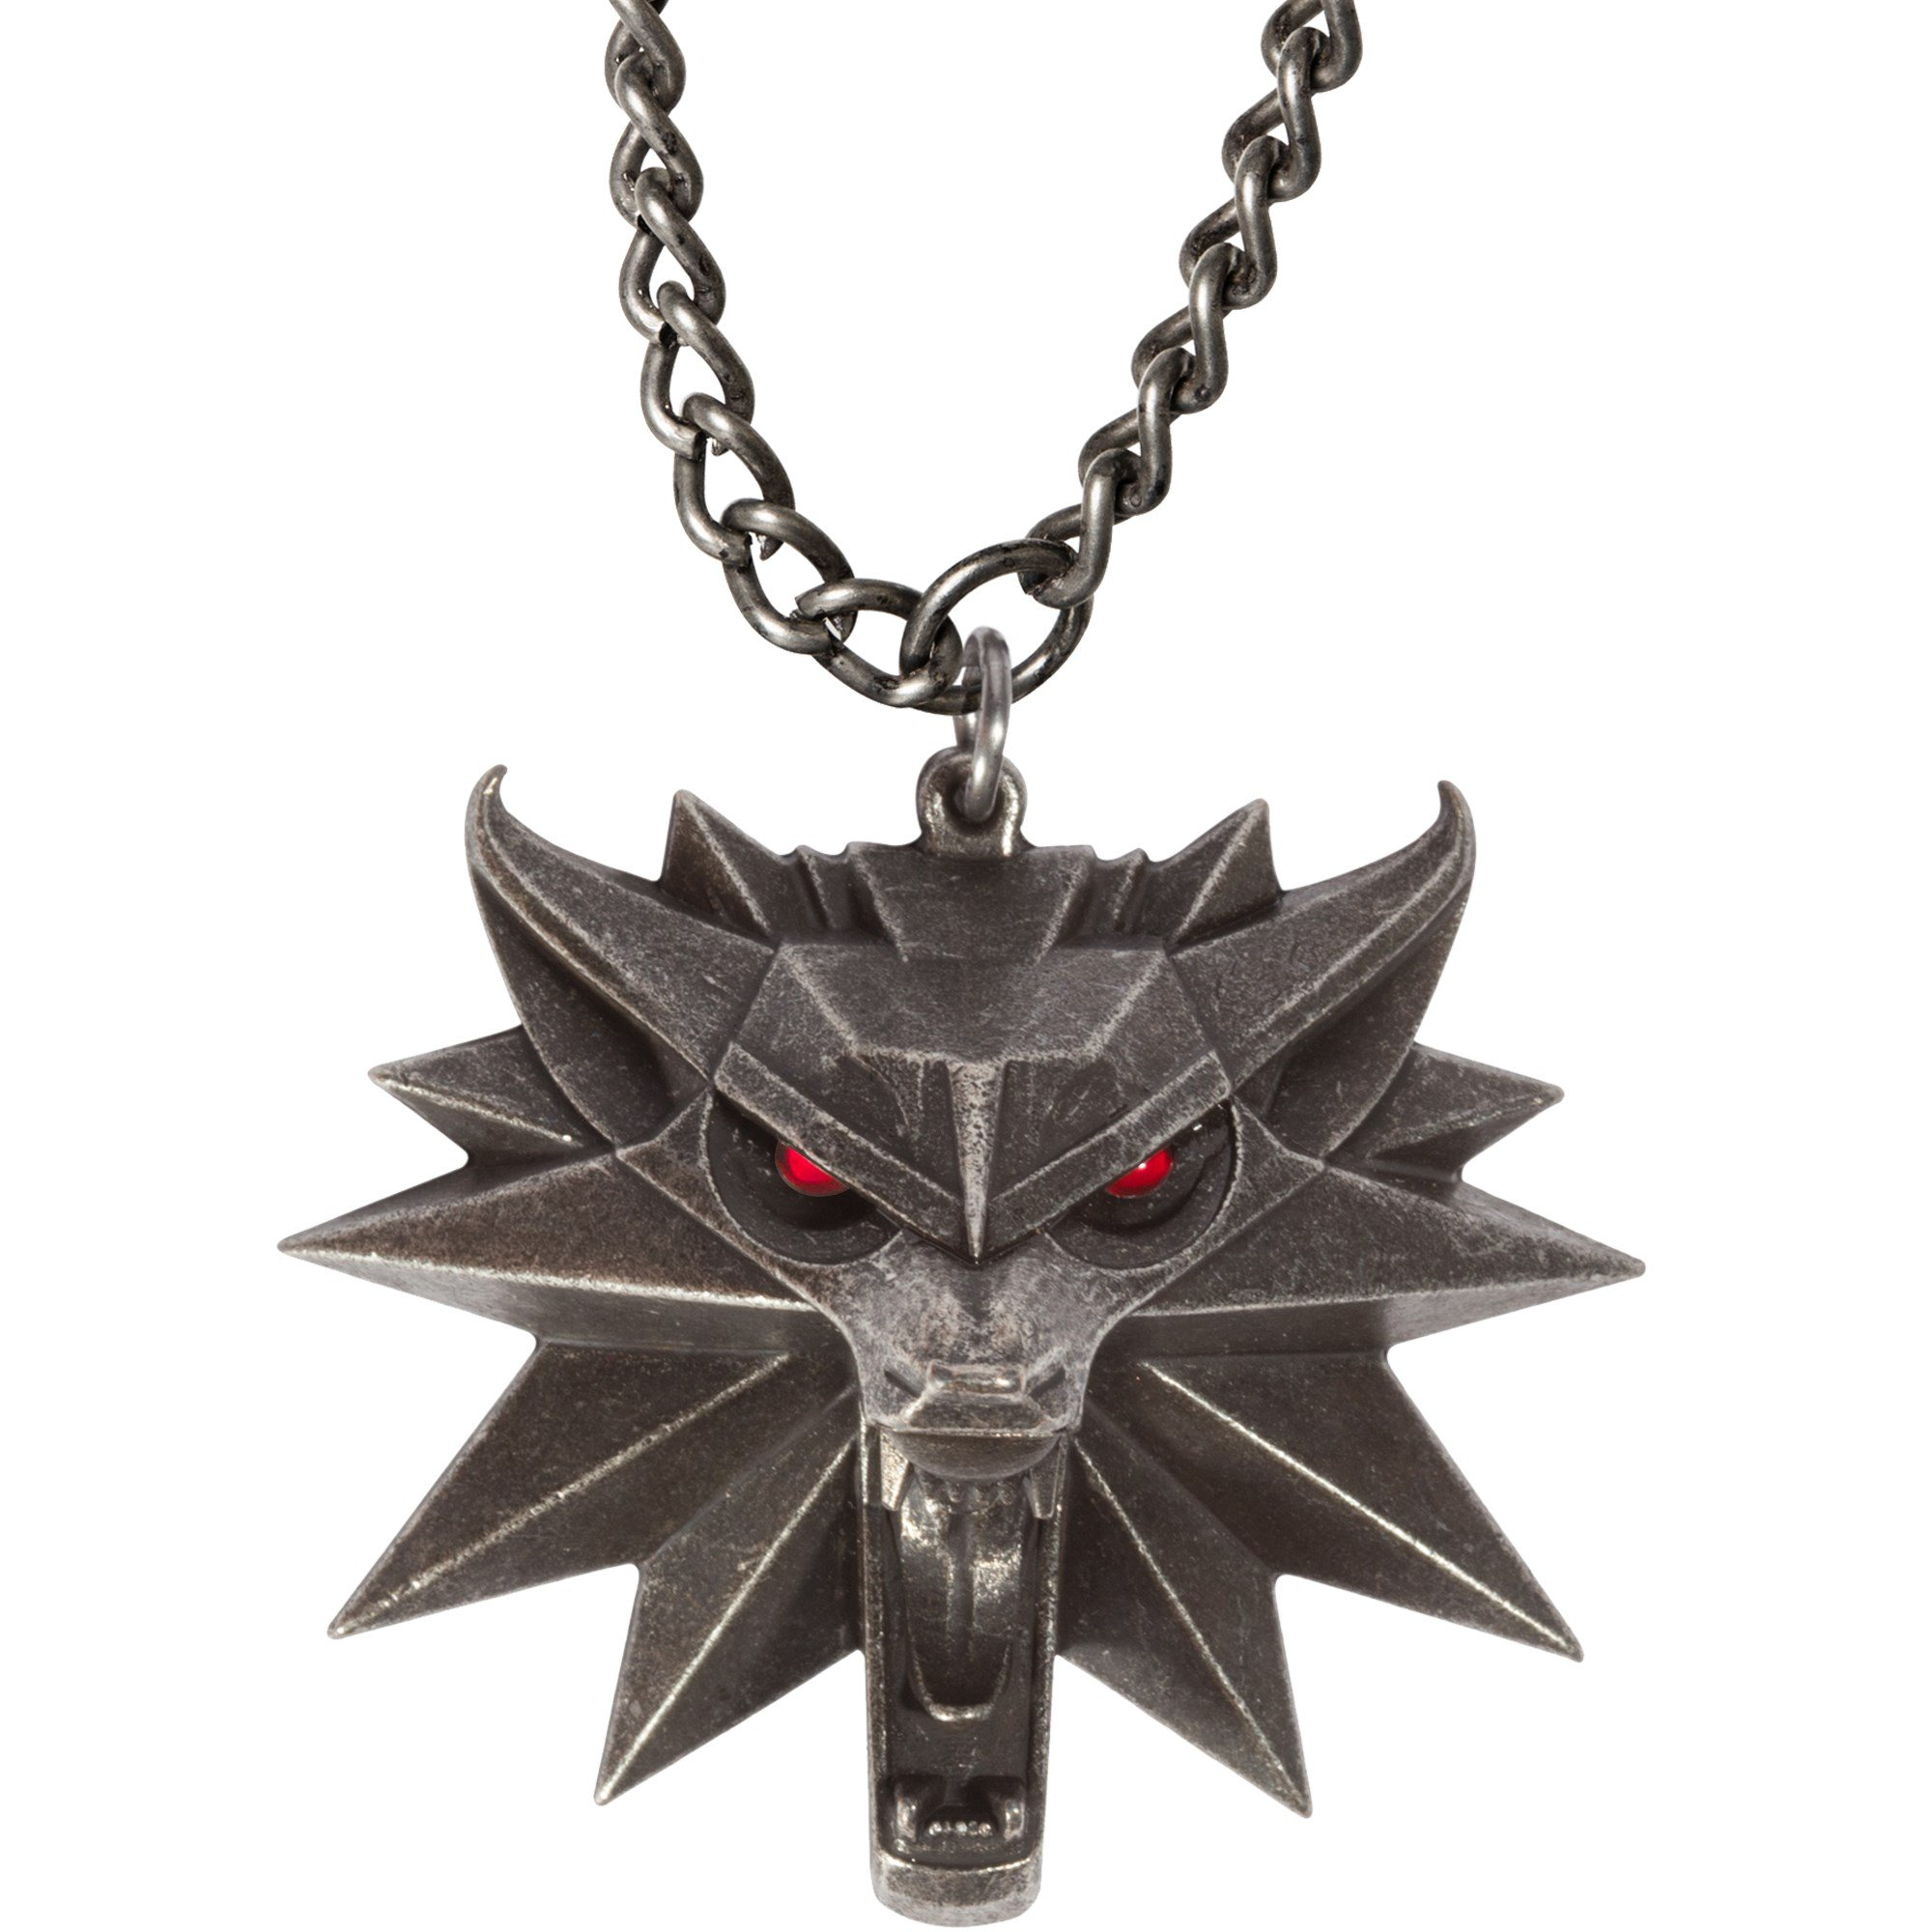 JINX The Witcher 3 Necklace with Wild Hunt Medallion & Chain + LED Eyes